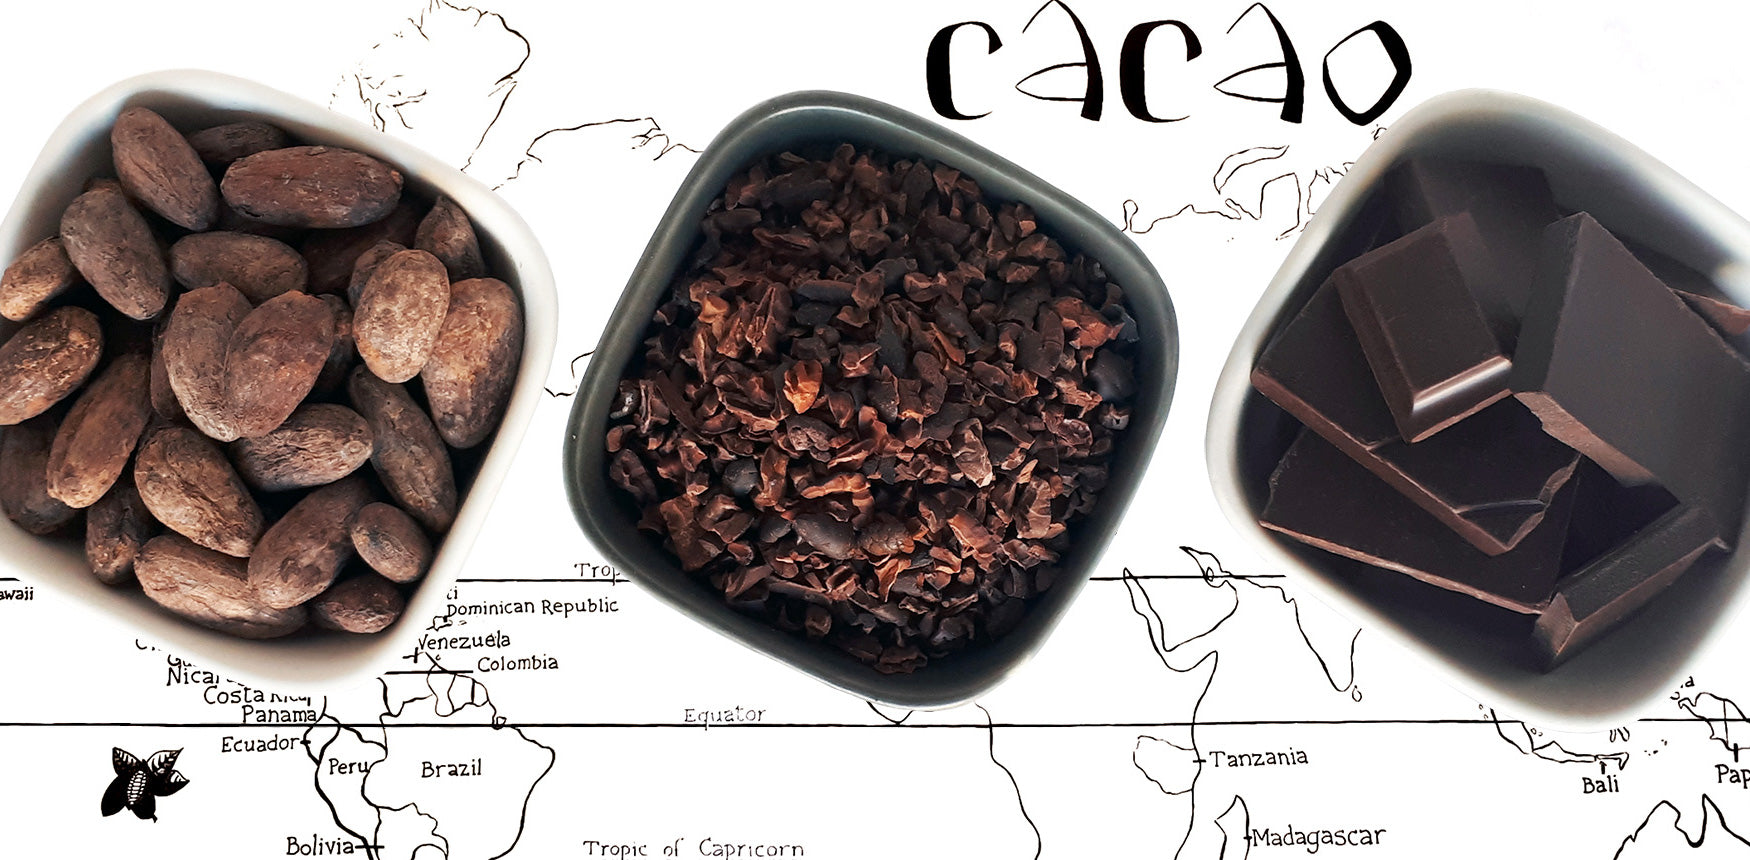 Image of cocoa beans, cocoa nibs and bean to bar chocolate